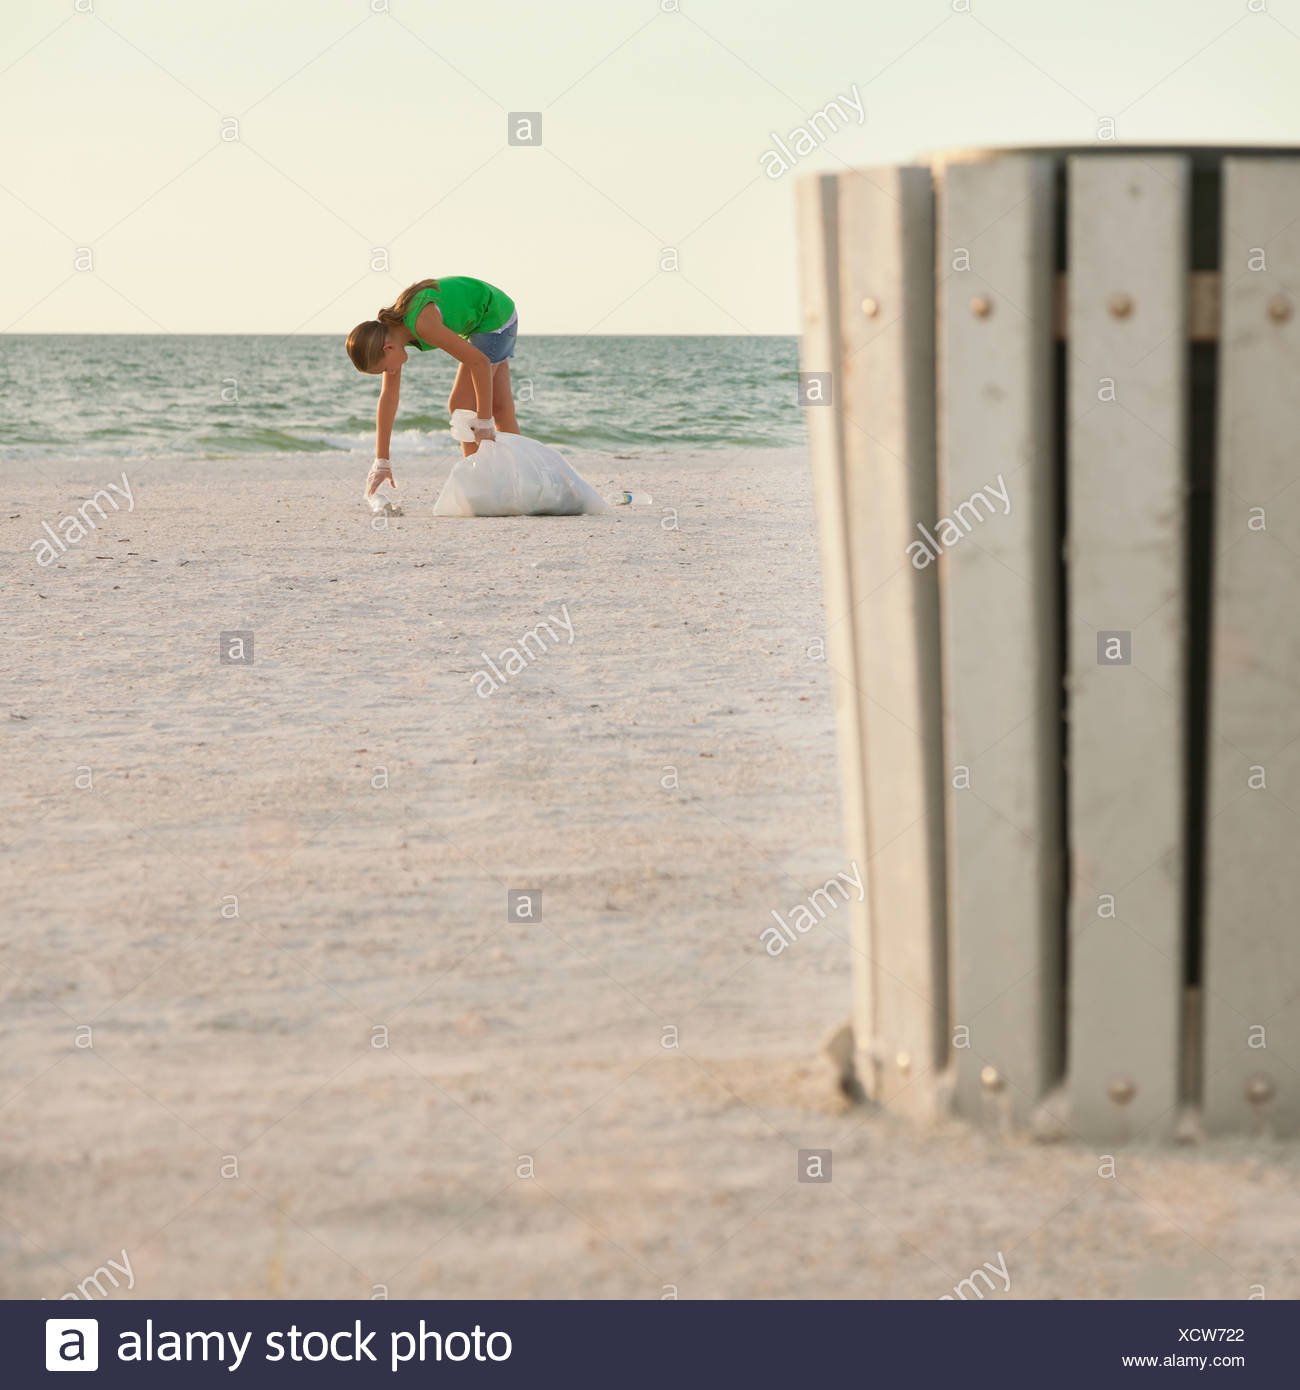 USA, Florida, St. Petersburg, Girl (10-11) cleaning beach, garbage bin in foreground - Stock Image